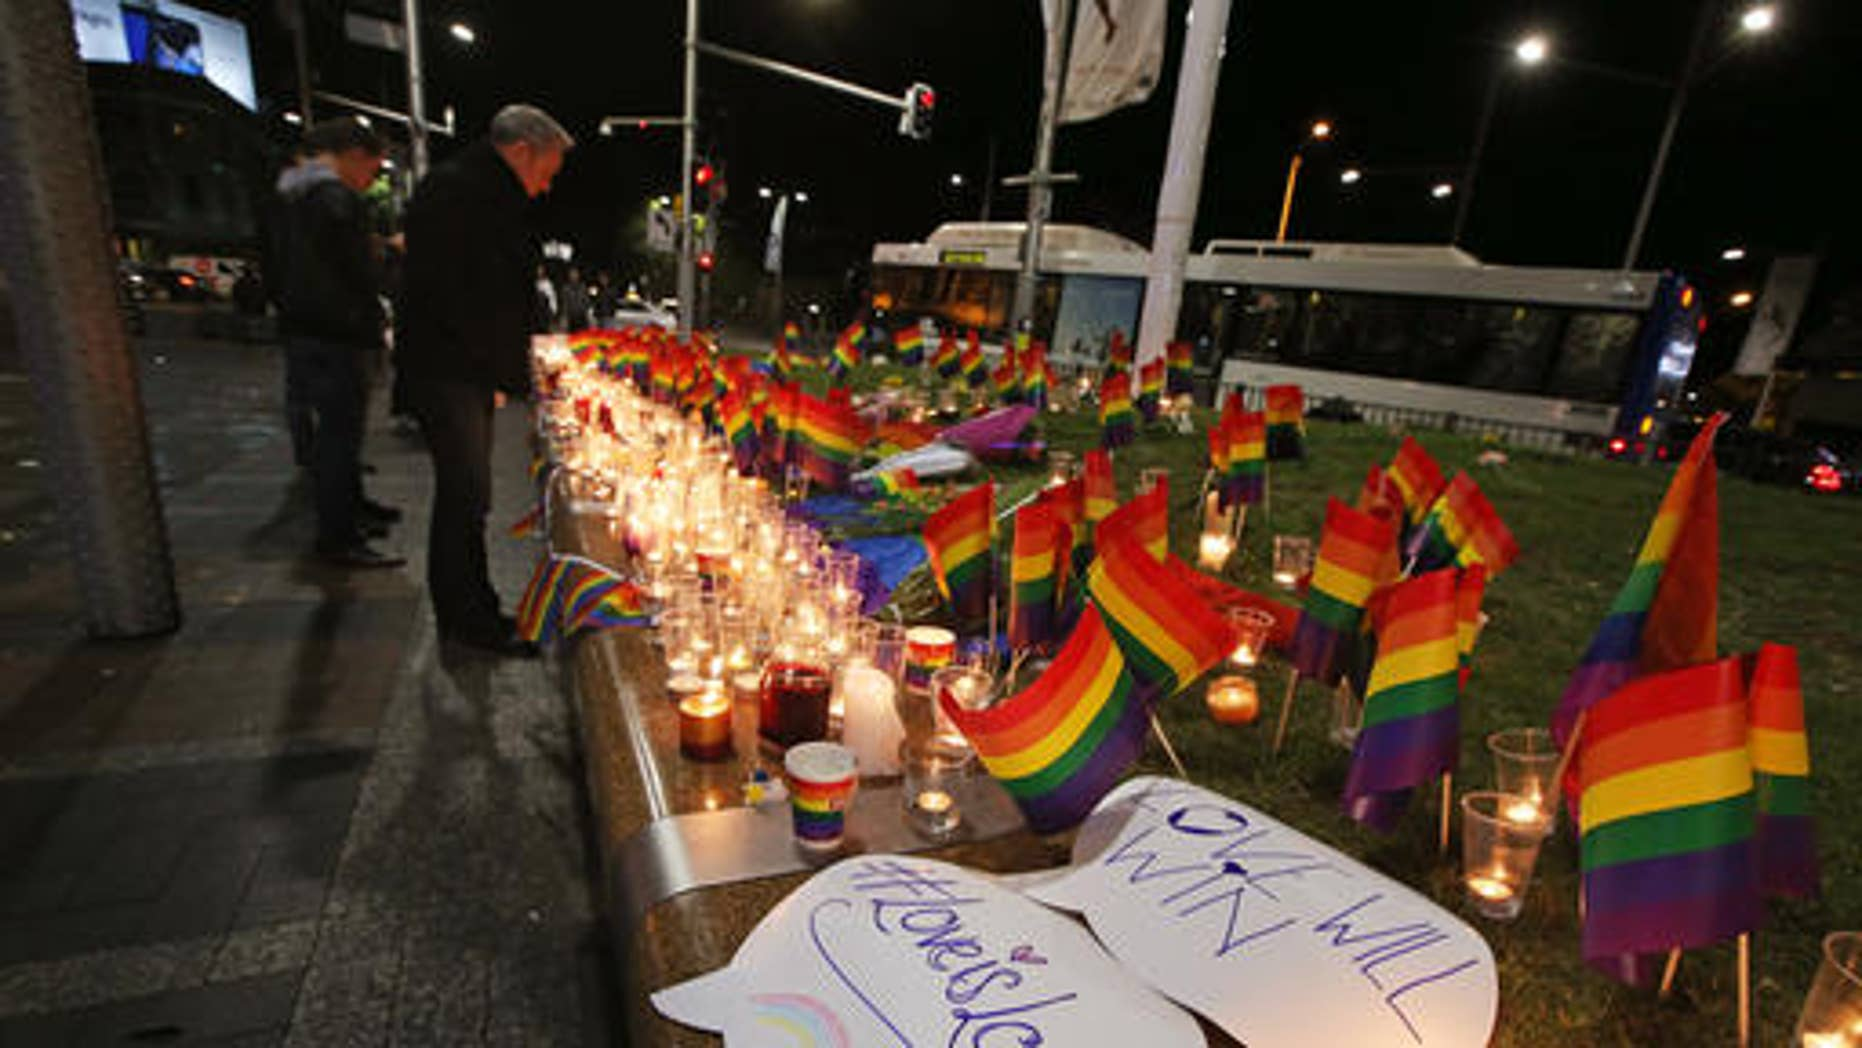 """An impromptu memorial is set up in Sydney, Monday, June 13, 2016, following the Florida mass shooting at the Pulse Orlando nightclub where police say a gunman wielding an assault-type rifle opened fire, killing at least 50 people and wounding dozens. Australian Prime Minister Malcolm Turnbull said that the Orlando mass shooting was """"an attack on all of us — on all our freedoms, the freedom to gather together, to celebrate, to share time with friends."""" (AP Photo/Rick Rycroft)"""